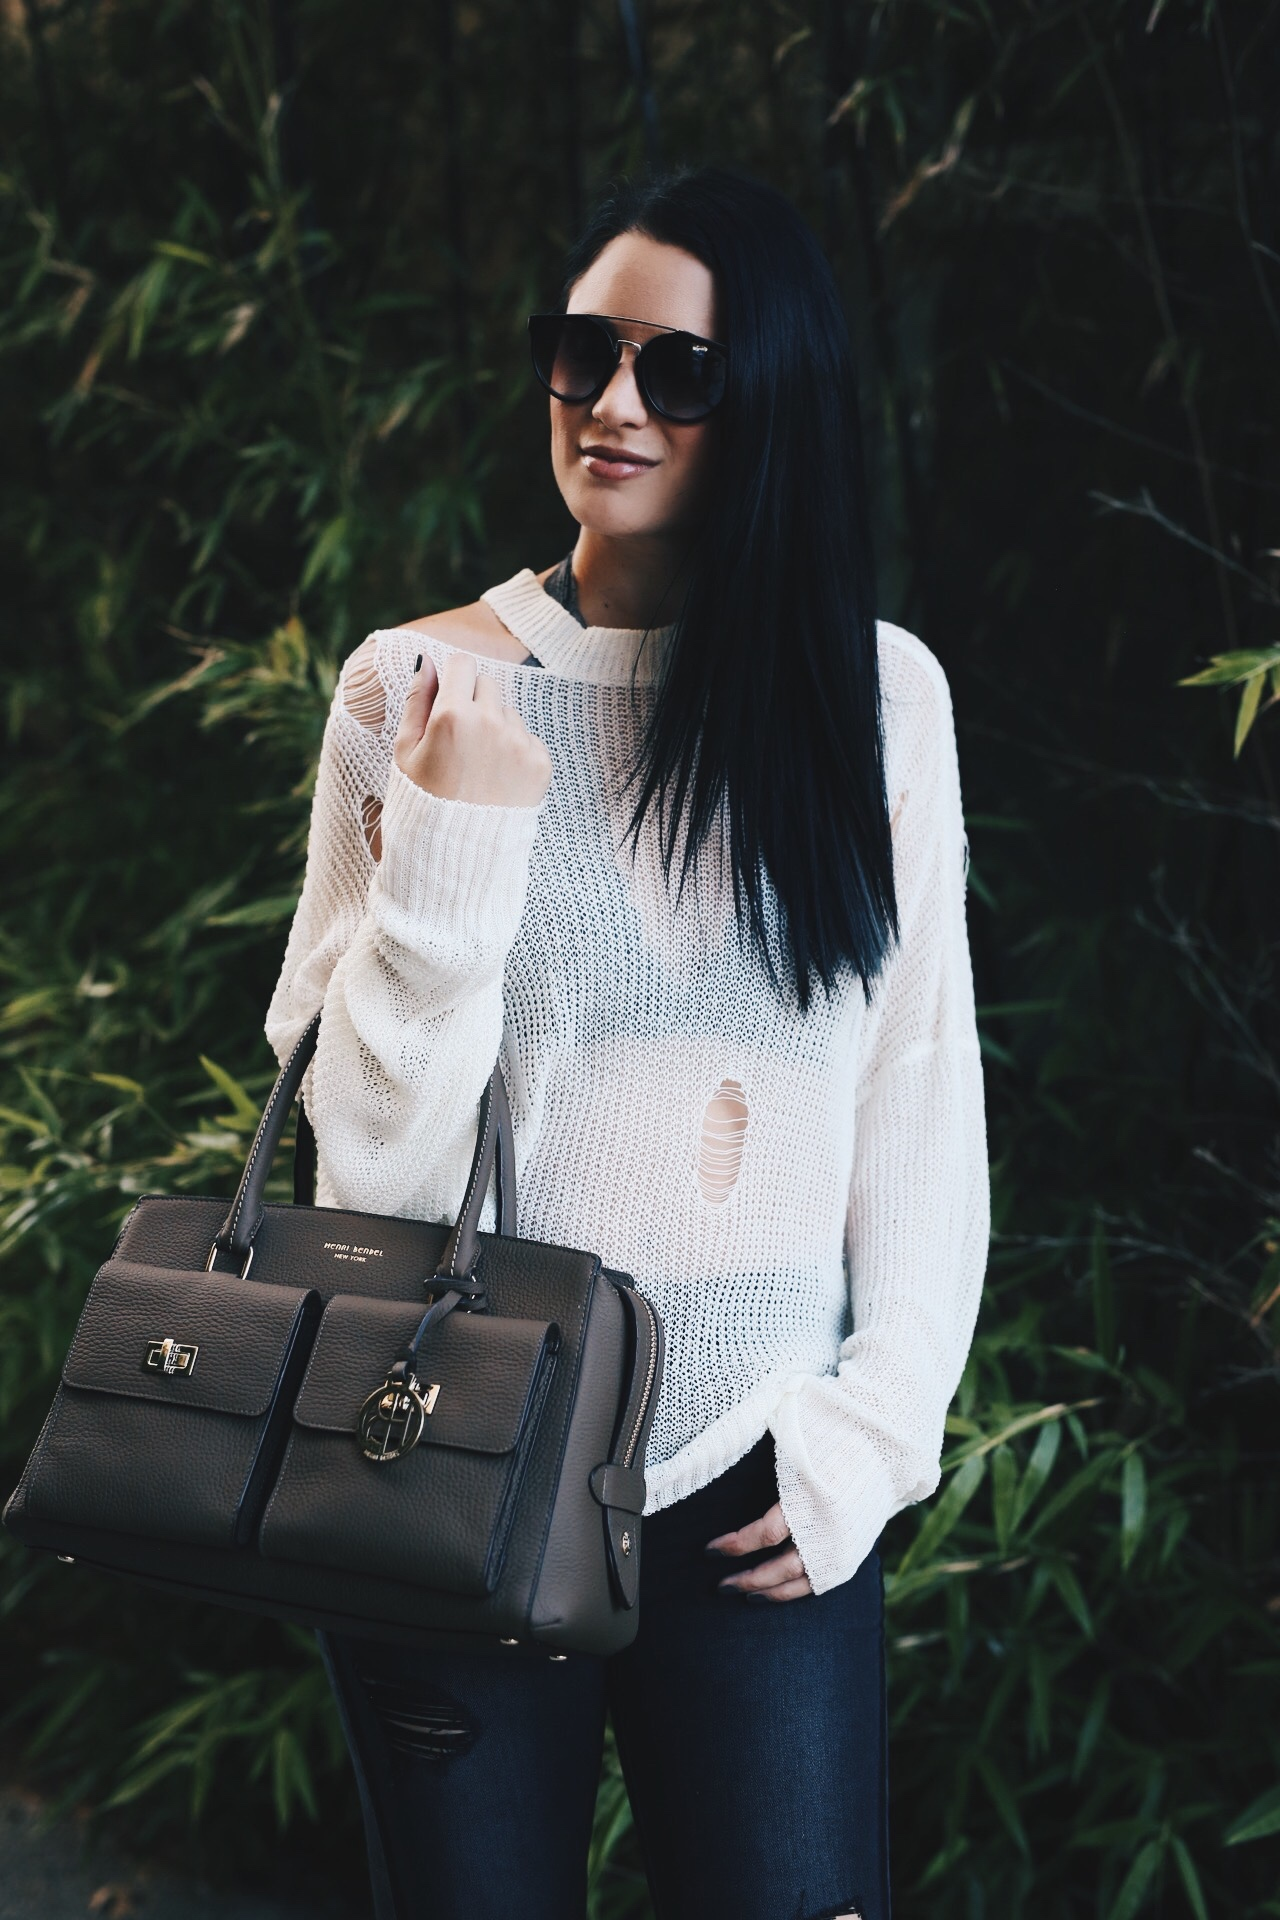 Austin Blogger DTKAustin is sharing how to pull off a sheer distressed sweater with ripped denim and how to still look put together. Handbag from Henri Bendel, sweater from Chicwish and denim from Express. Click for more photos and info. | how to wear a sheer sweater | fall fashion tips | fall outfit ideas | fall style tips | what to wear for fall | cool weather fashion | fashion for fall | style tips for fall | outfit ideas for fall || Dressed to Kill